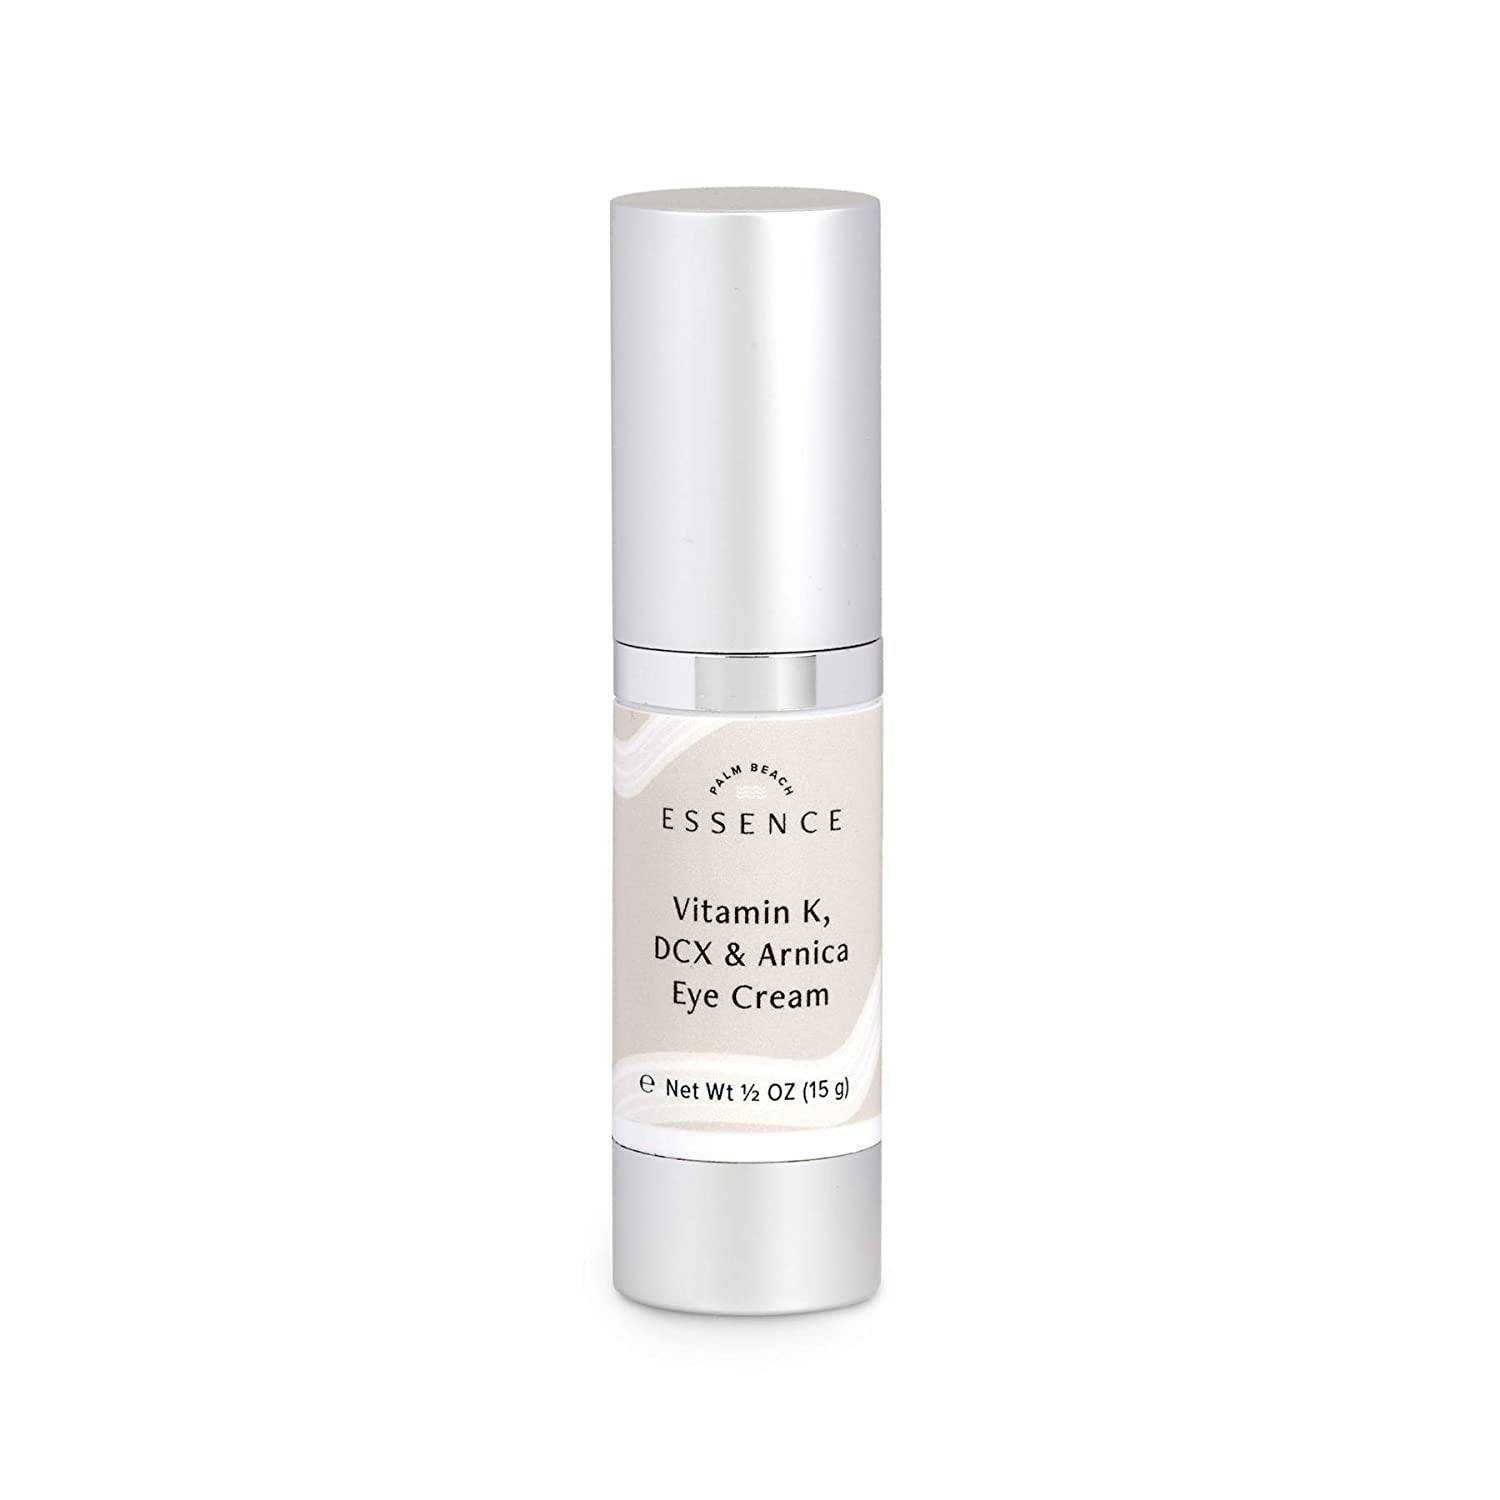 Palm Beach Essence - Dark Circle Eye Cream w/ Vitamin K, DCX & Arnica, Eye Wrinkle Cream, Eye Cream for Puffiness